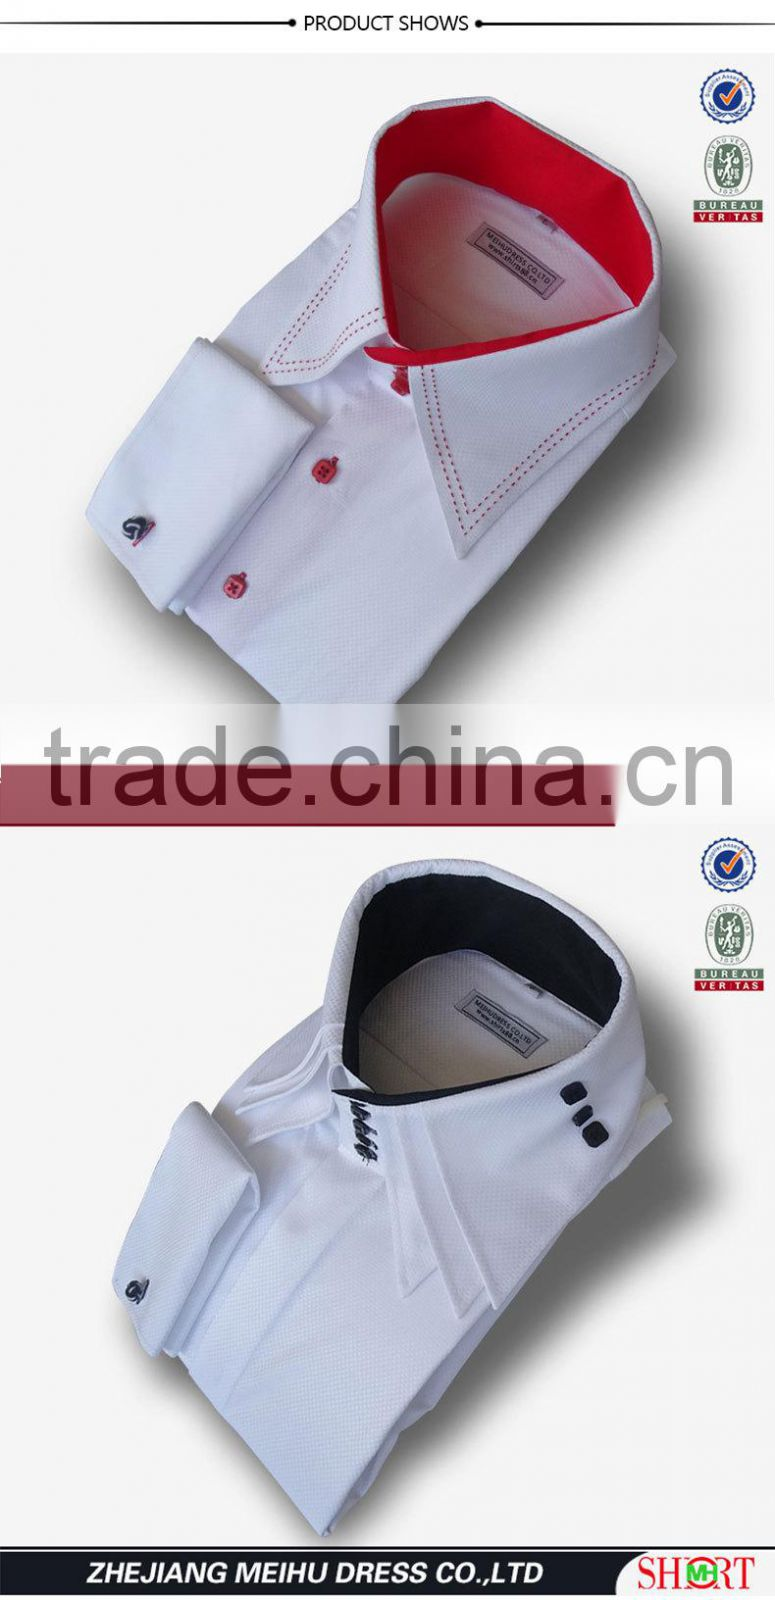 2017 Mens 100 Cotton Luxury Dress Formal White Solid Roll Collar